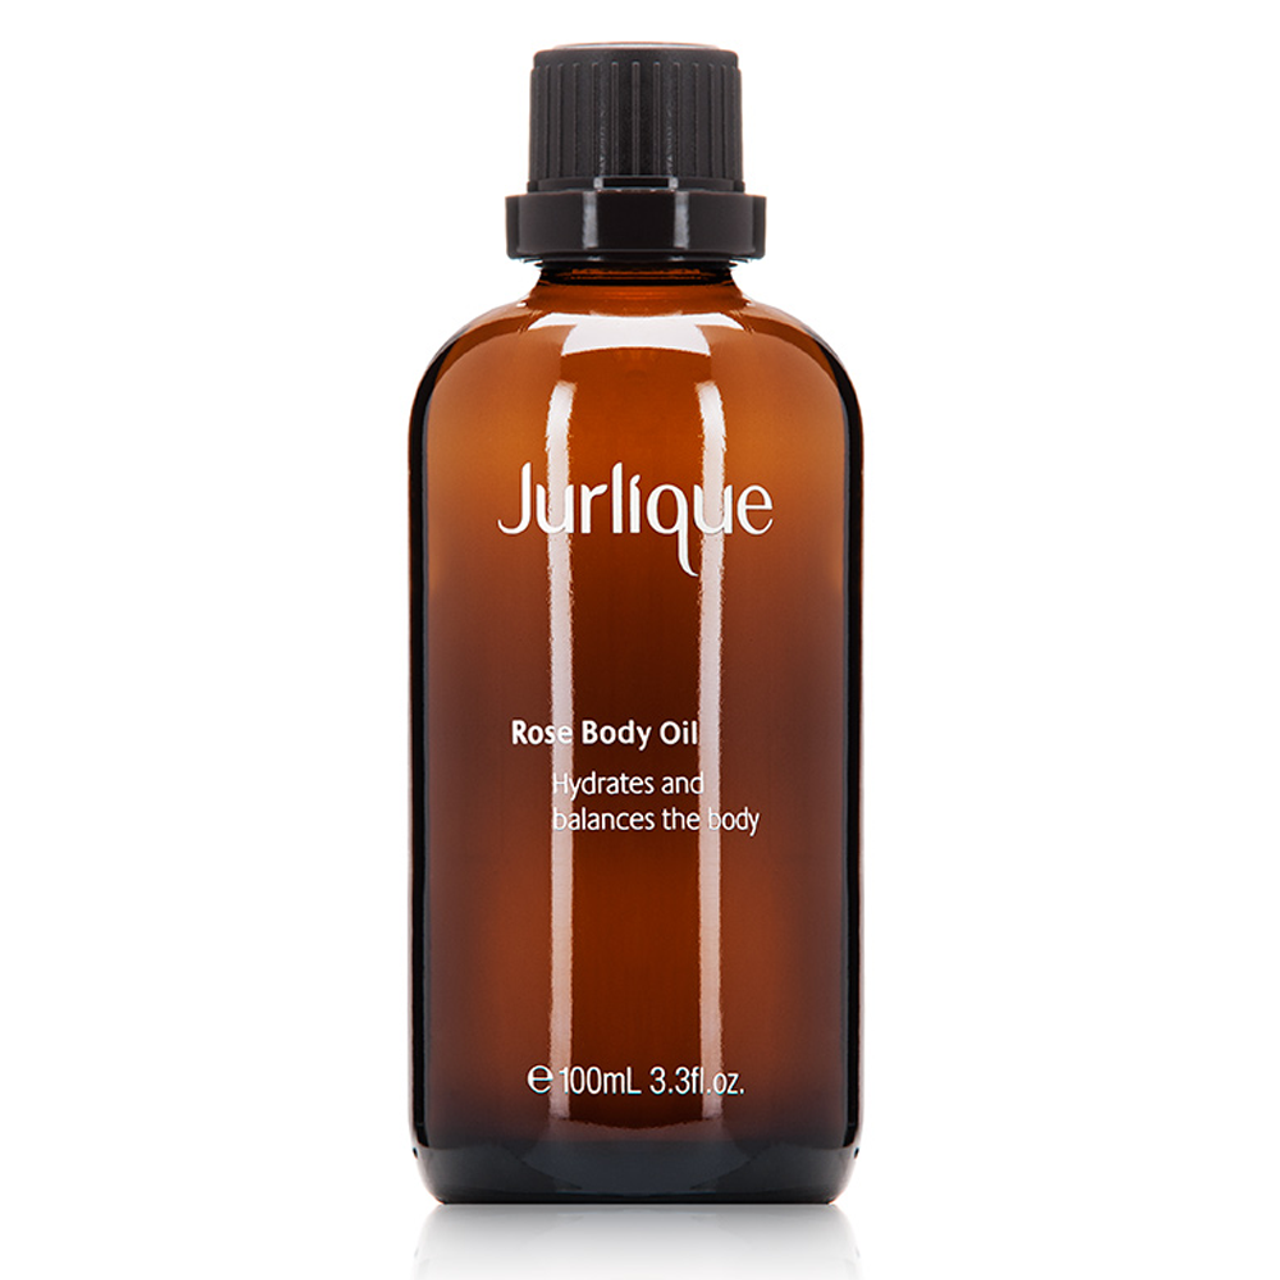 Jurlique Rose Body Oil